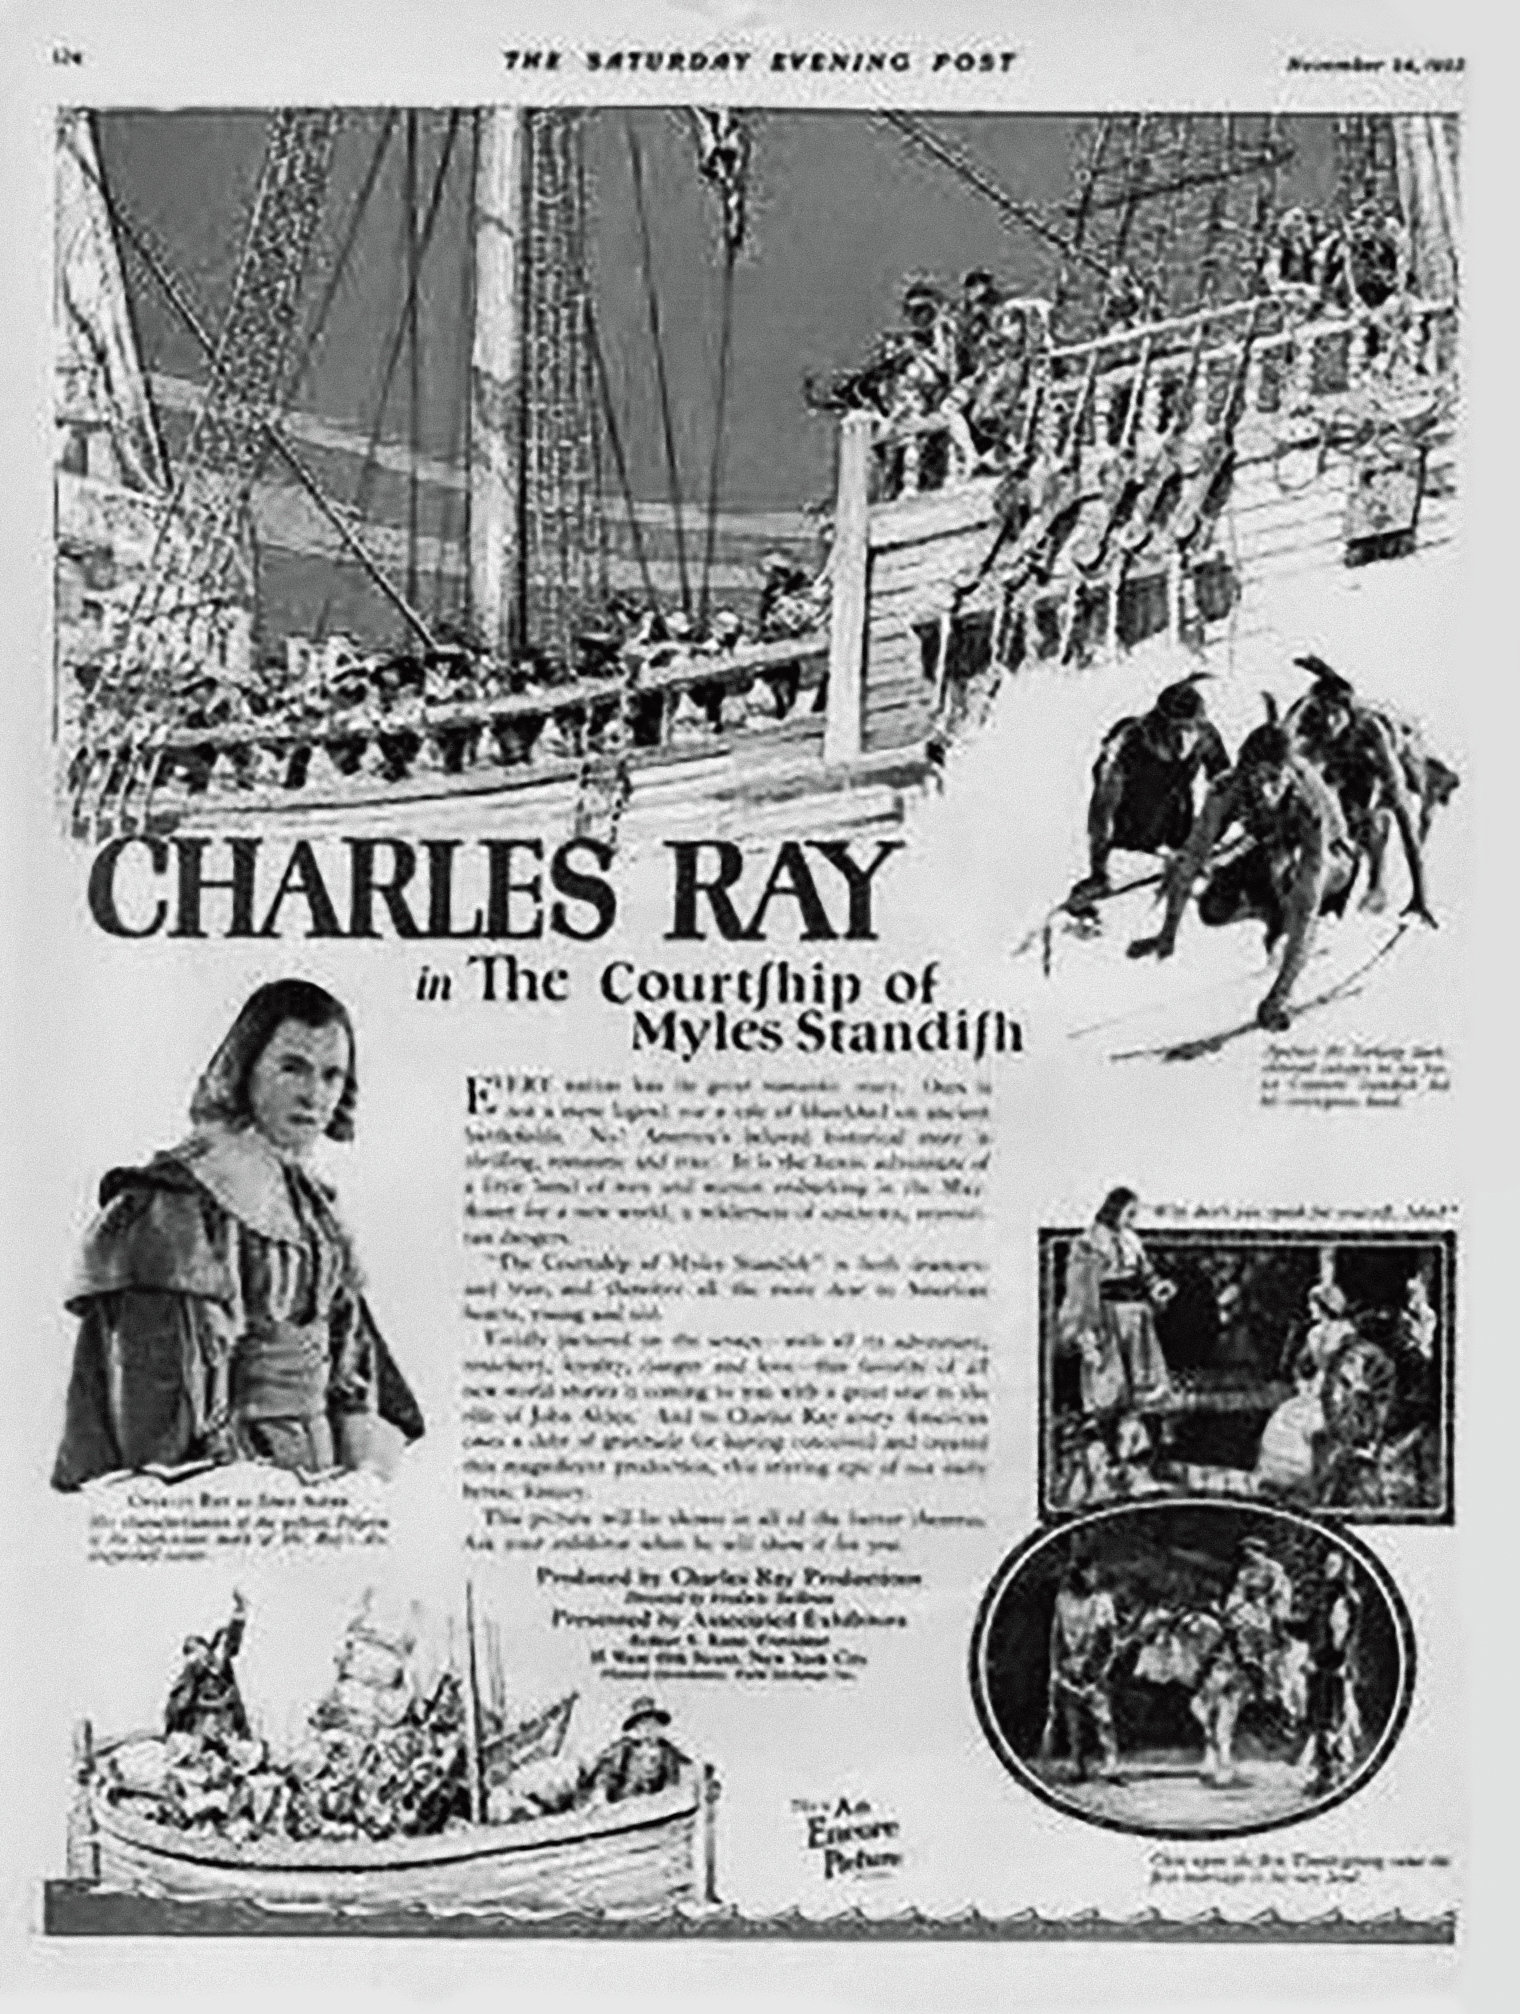 Charles Ray films